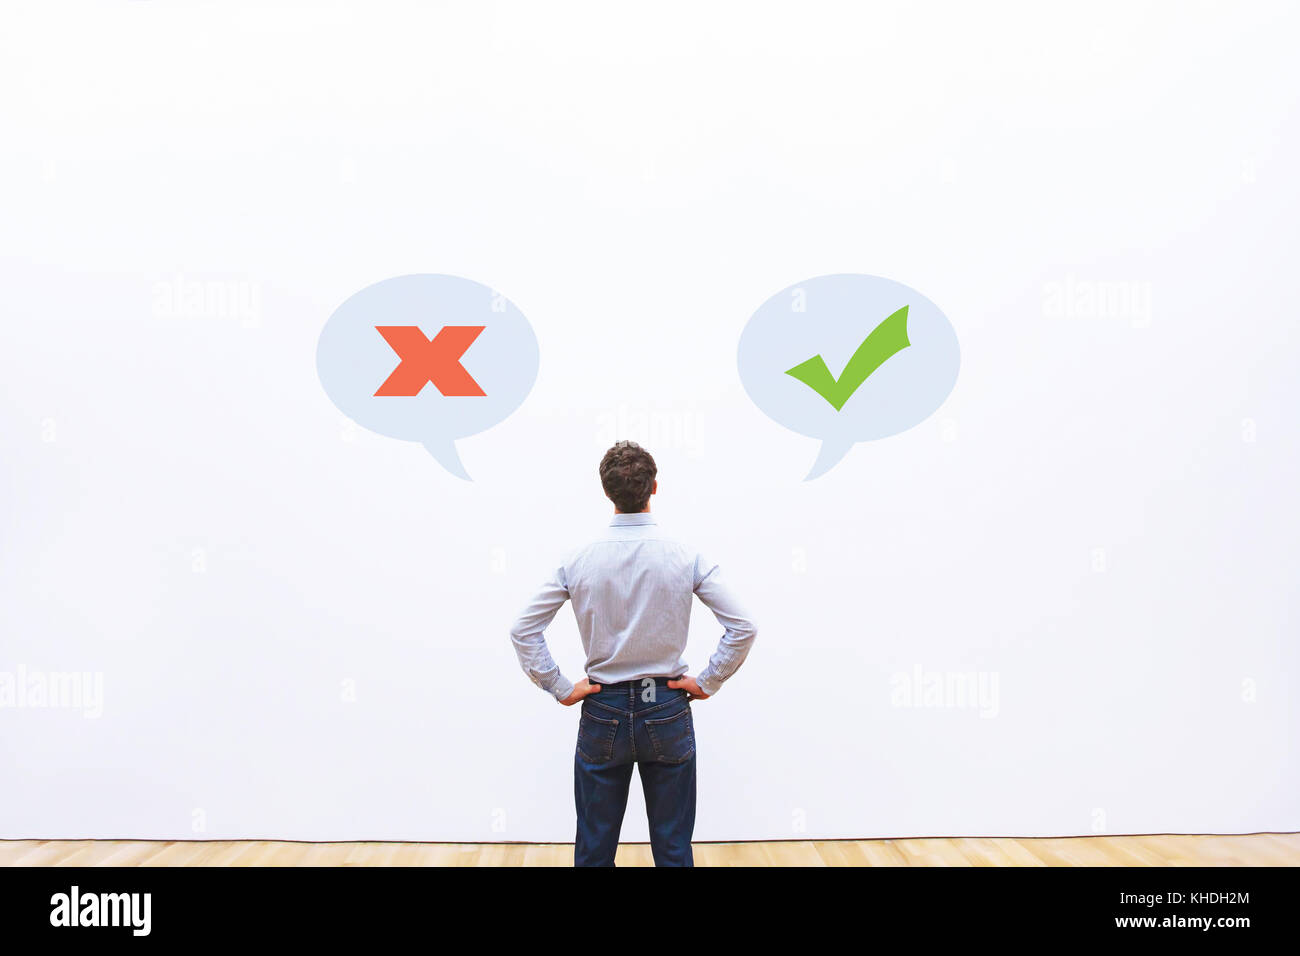 allowed or prohibited concept, right or wrong thoughts, positive thinking - Stock Image